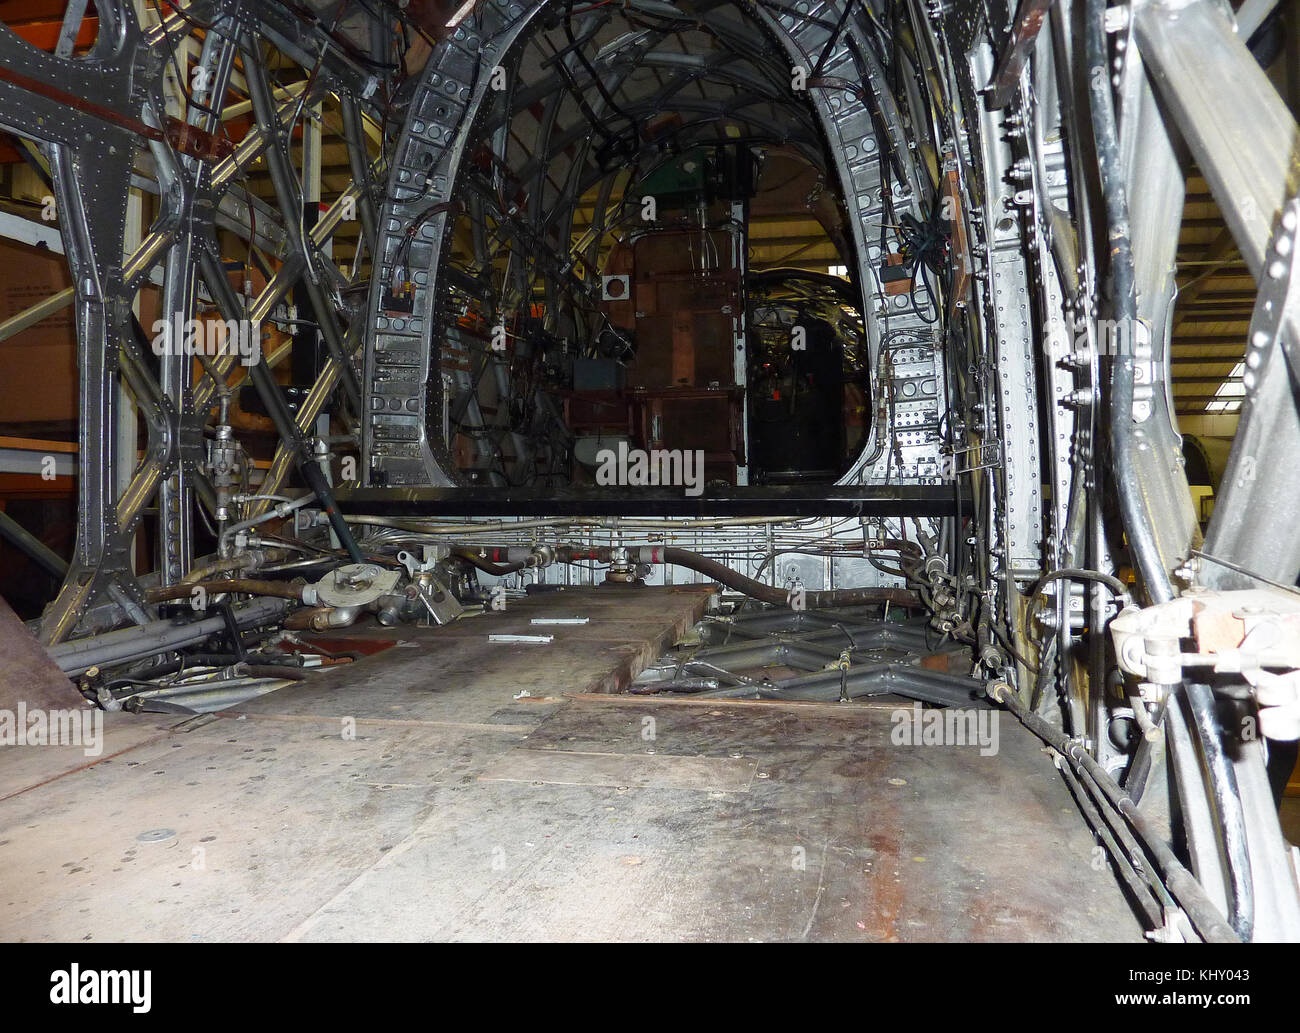 Airframe of Wellington bomber,Cosford RAF museum,Shropshire - Stock Image